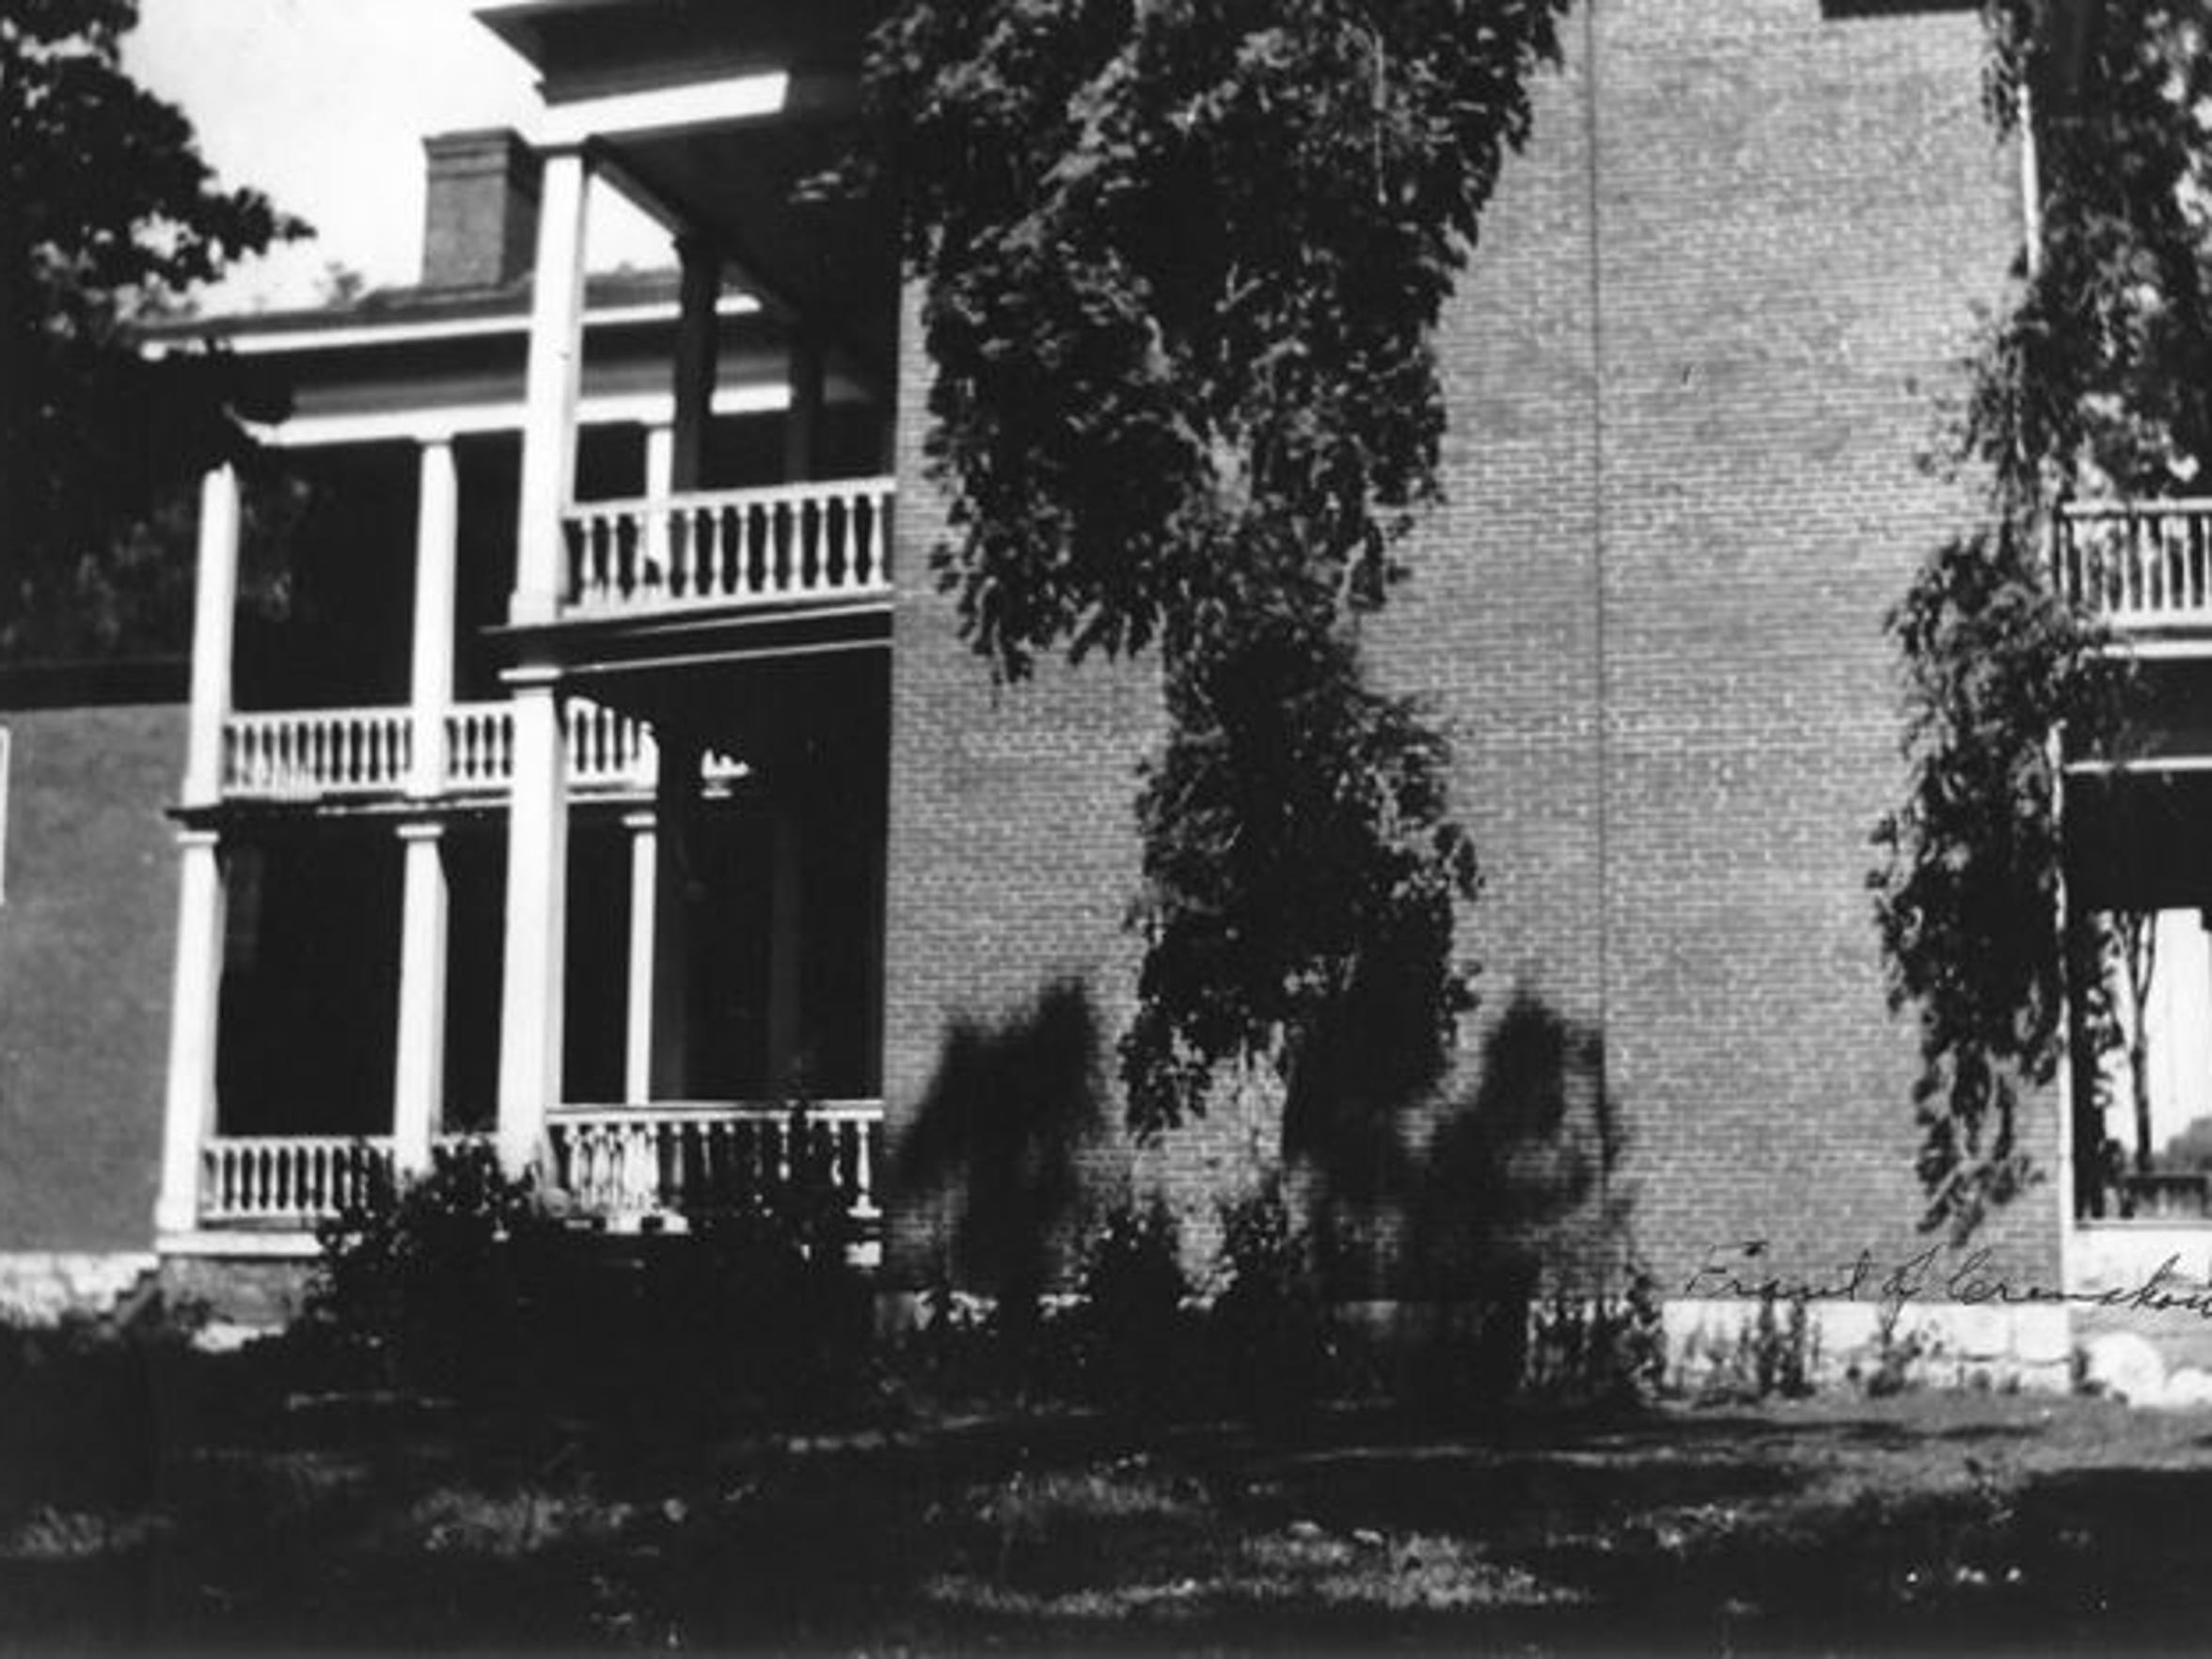 The dead baby was found at the vacant Crenshaw Mansion,